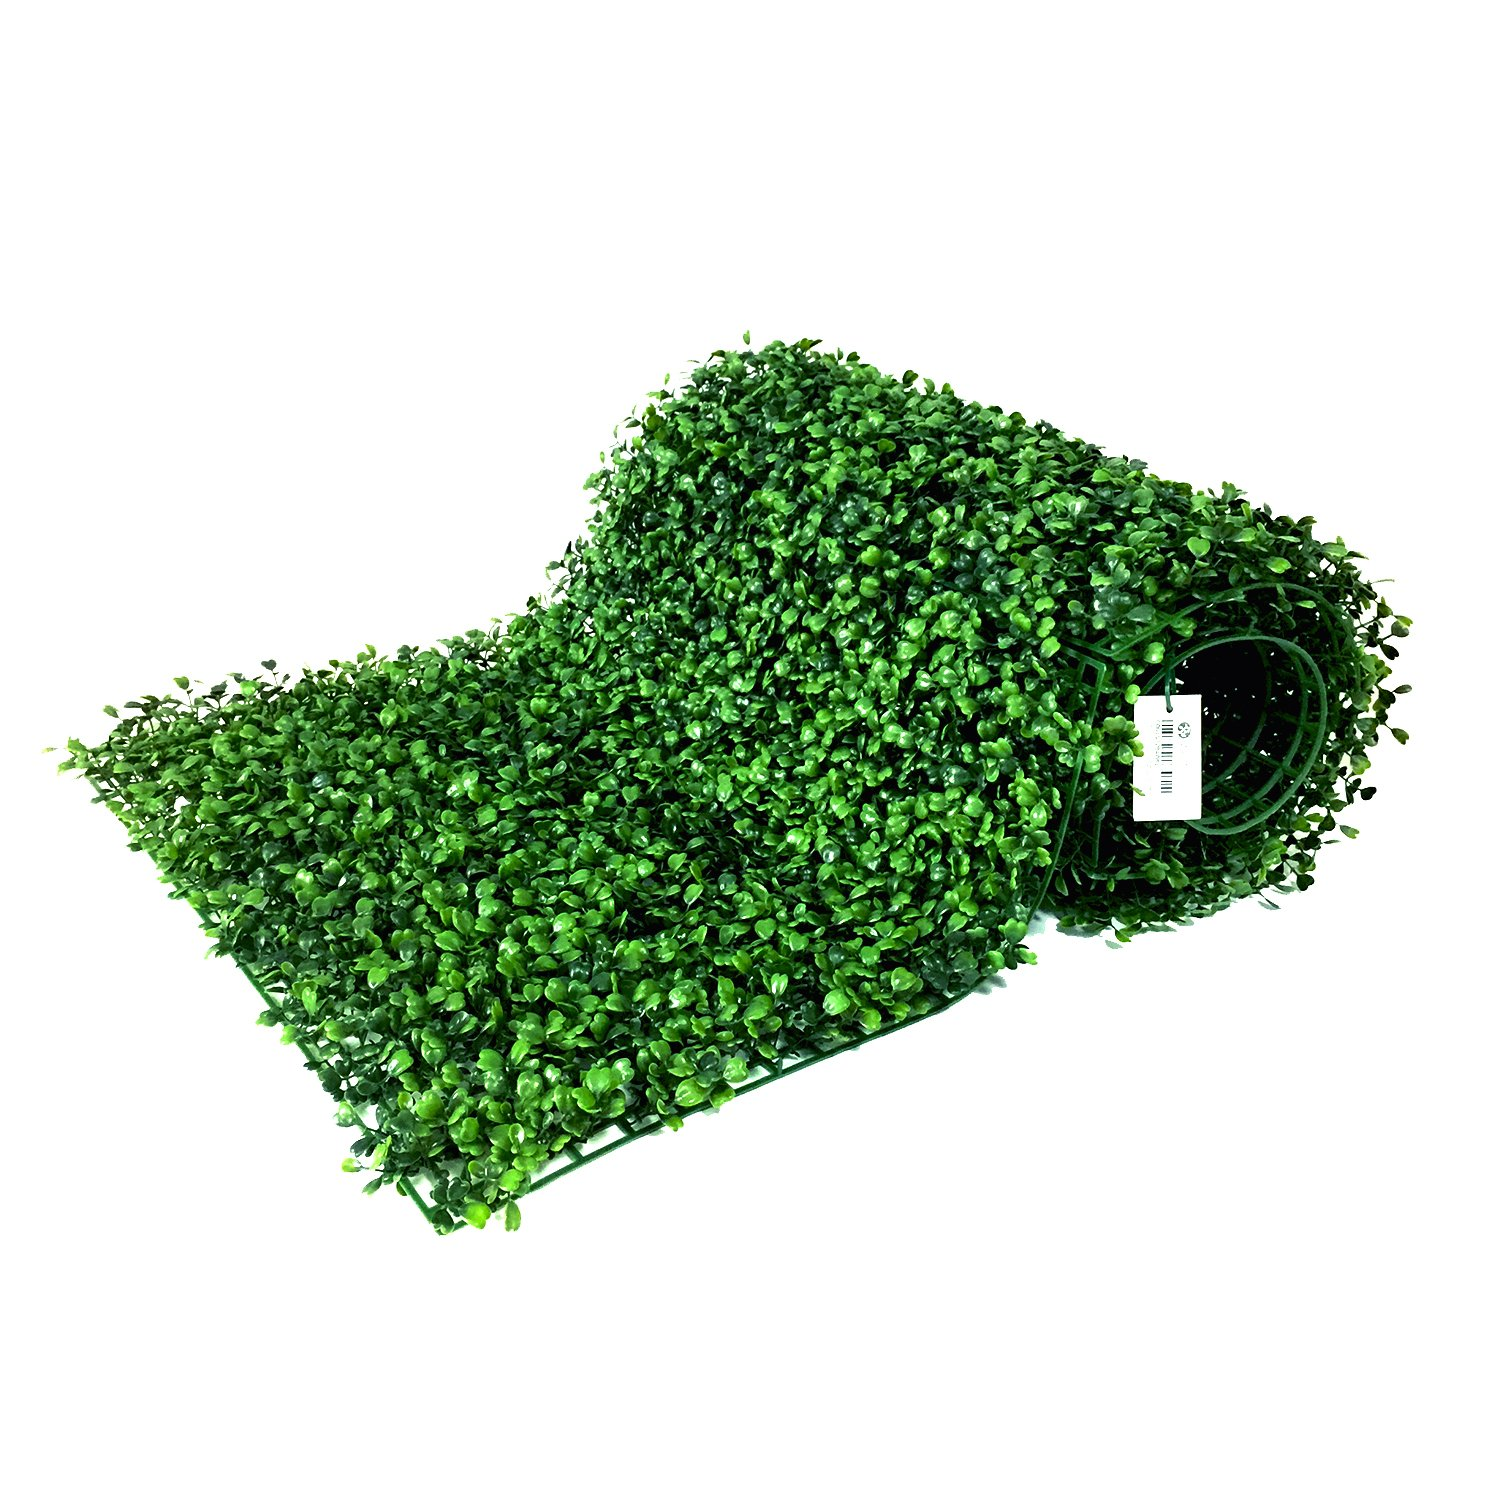 BesameNature 12 Piece Artificial Boxwood Hedge Panels, UV Protected Faux Greenery Mats for Both Outdoor or Indoor Decoration, 20'' L x 20 W'' by BesameNature